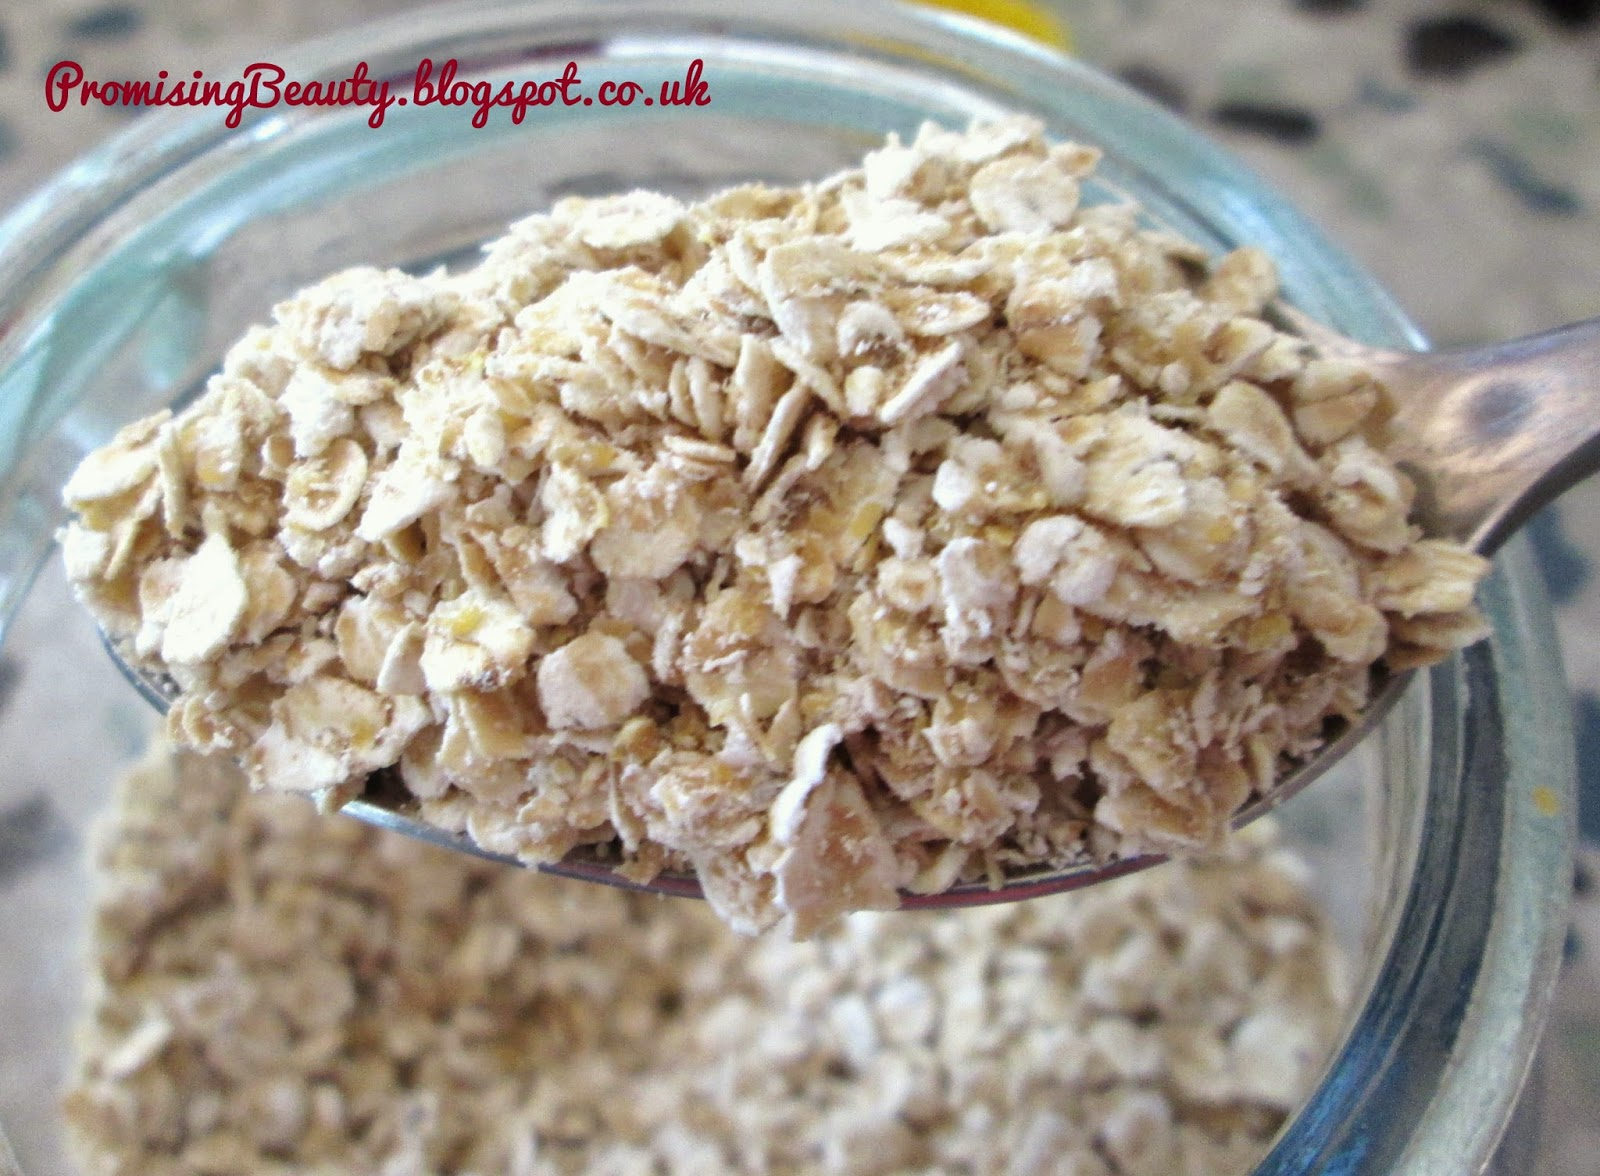 Natural cleanser from the kitchen cupboard. Oats or oatmeal or oat flour. Spoonful of oats for DIY beauty cleanser. Calming and anti acne